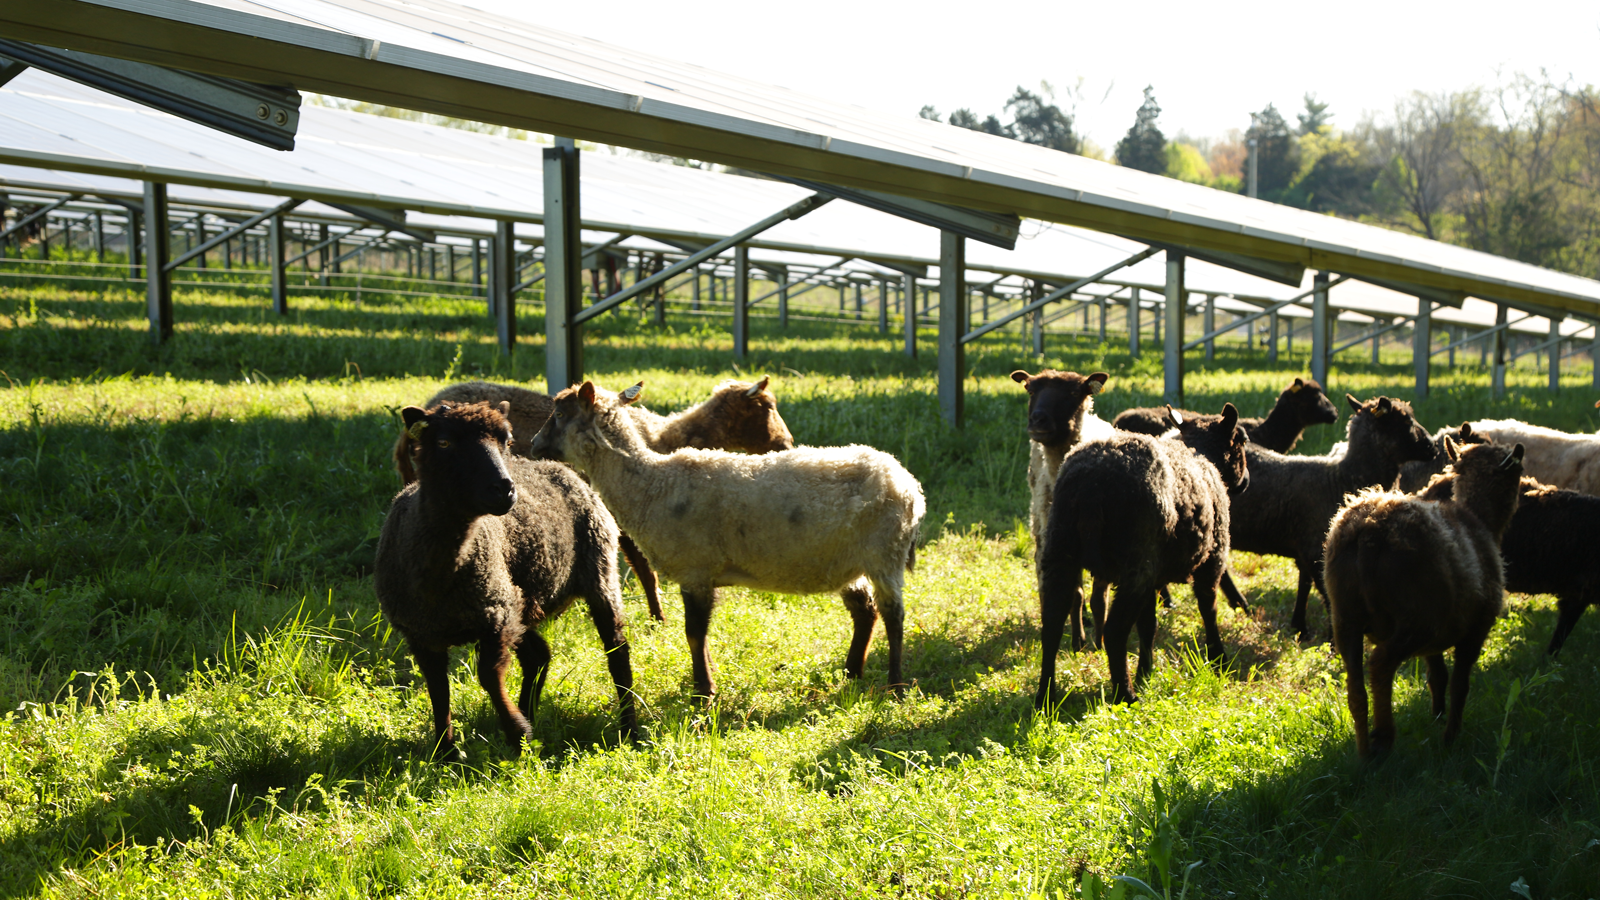 sheep grazing under solar array at E.W. Brown Station